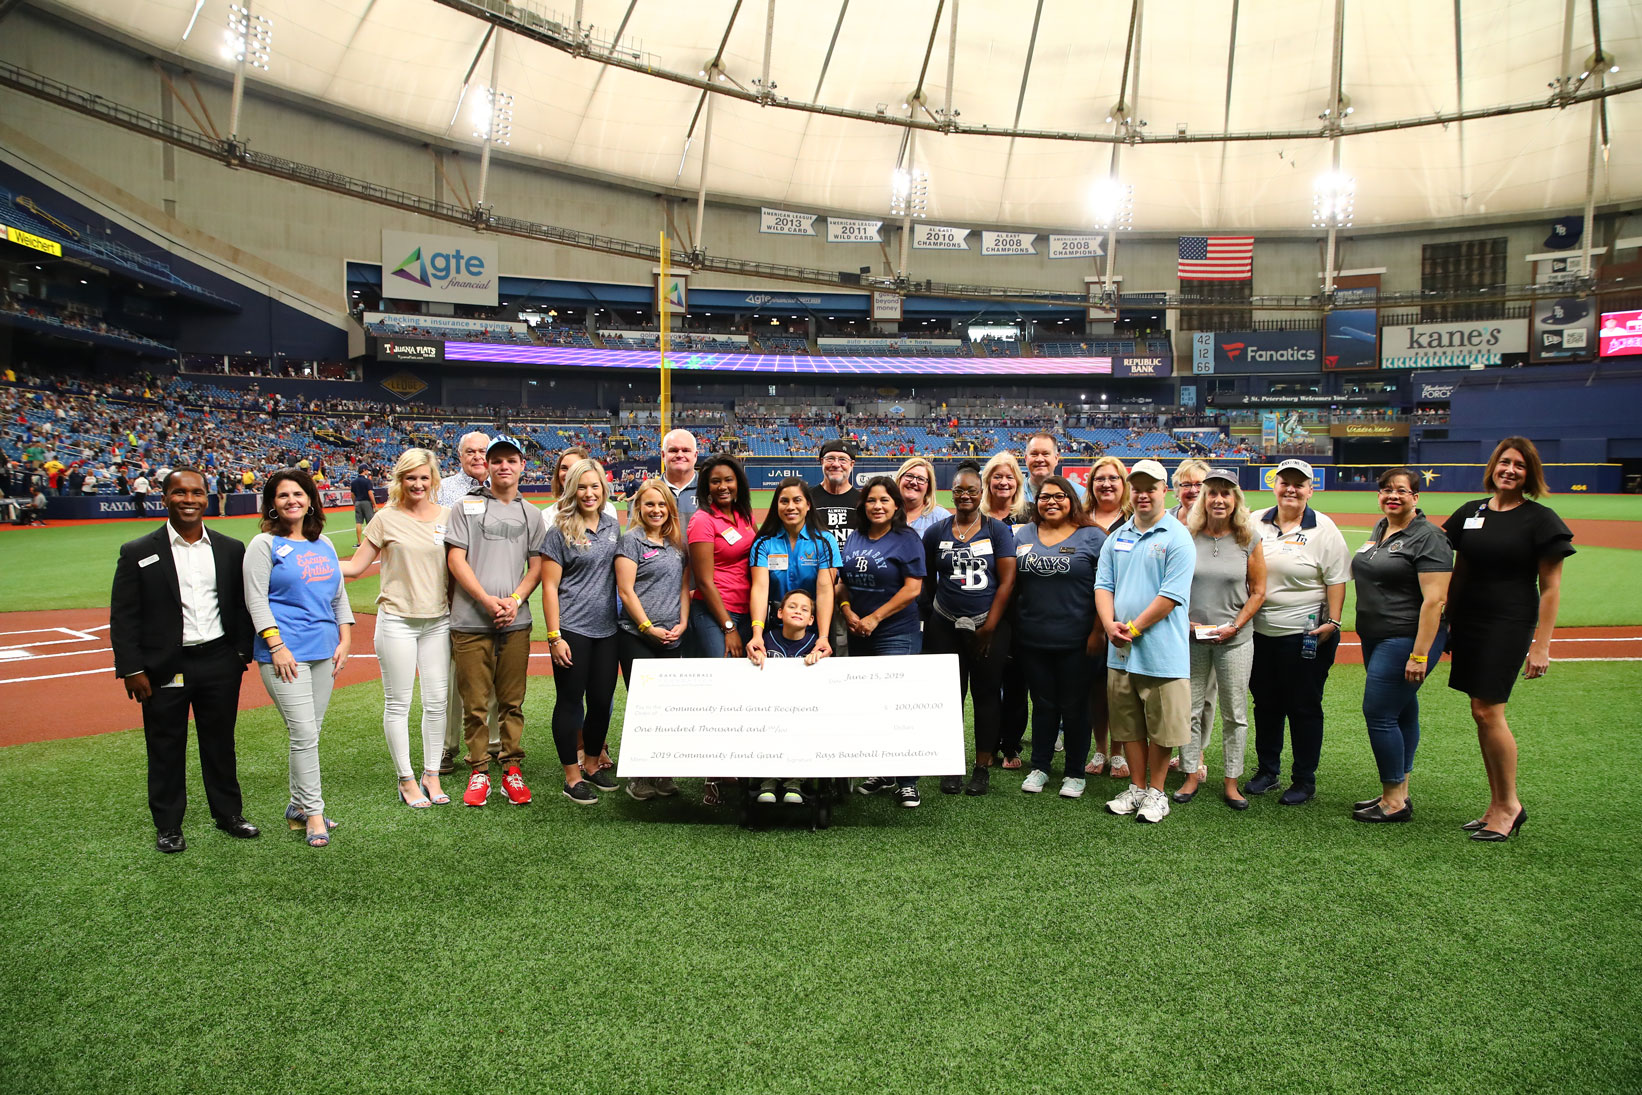 Group photo with oversized check inside Tropicana Field.